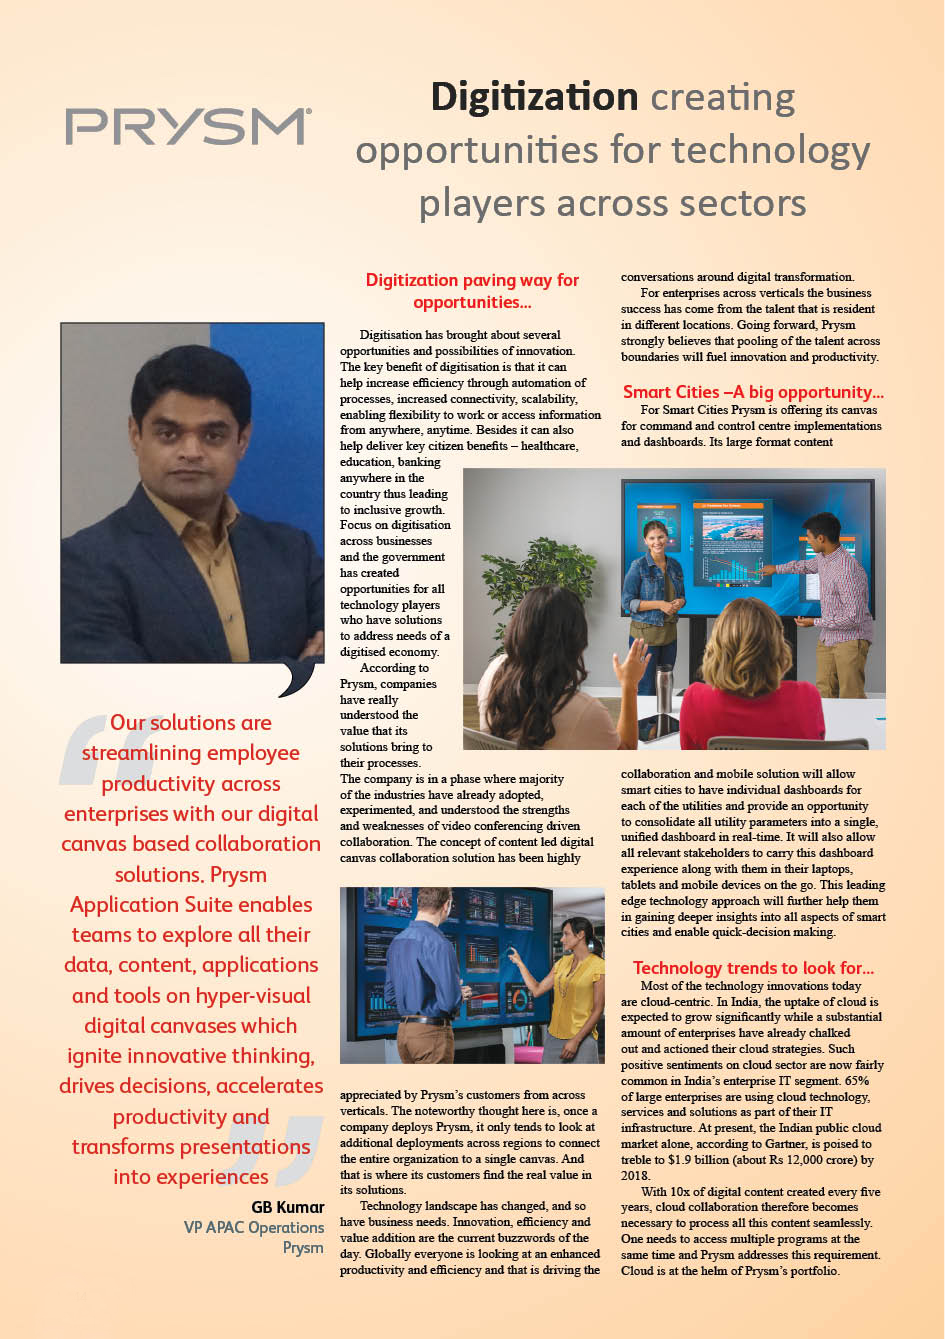 Prysm: Digitization creating opportunities for technology players across sectors